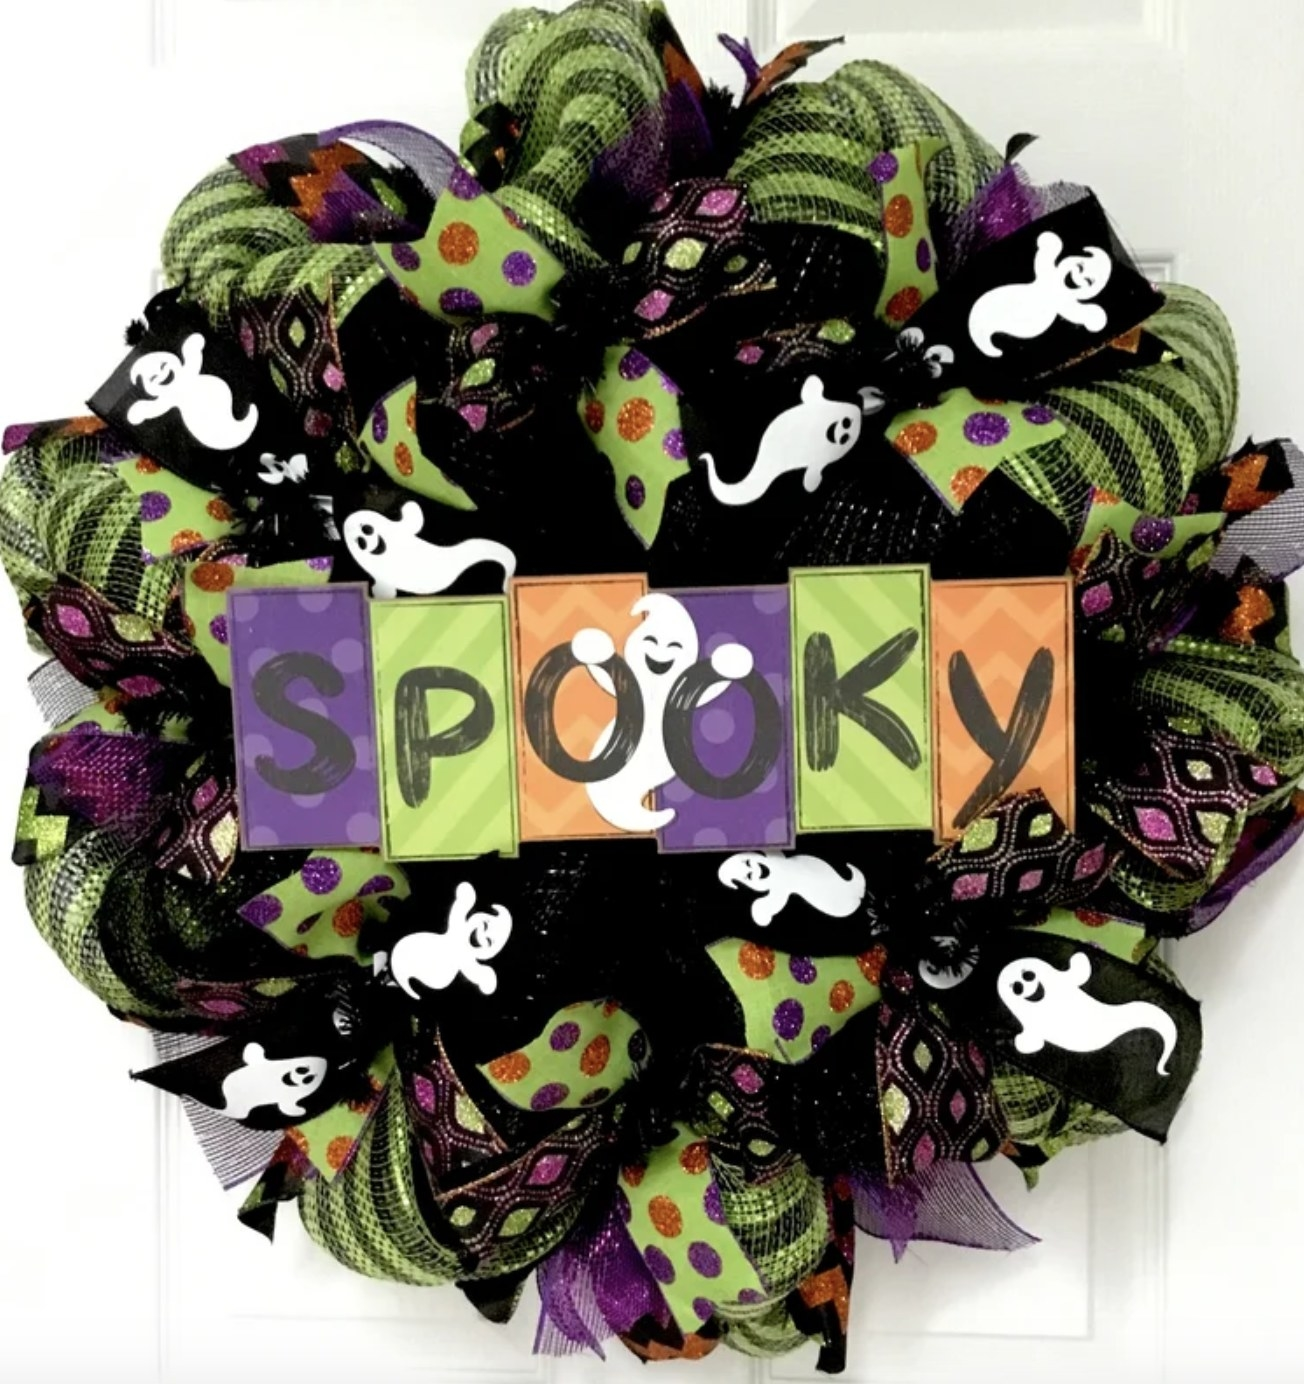 """The mesh green purple and orange wreath has sparkles, ghosts, stripes, polka dots and a sign that says """"SPOOKY"""""""